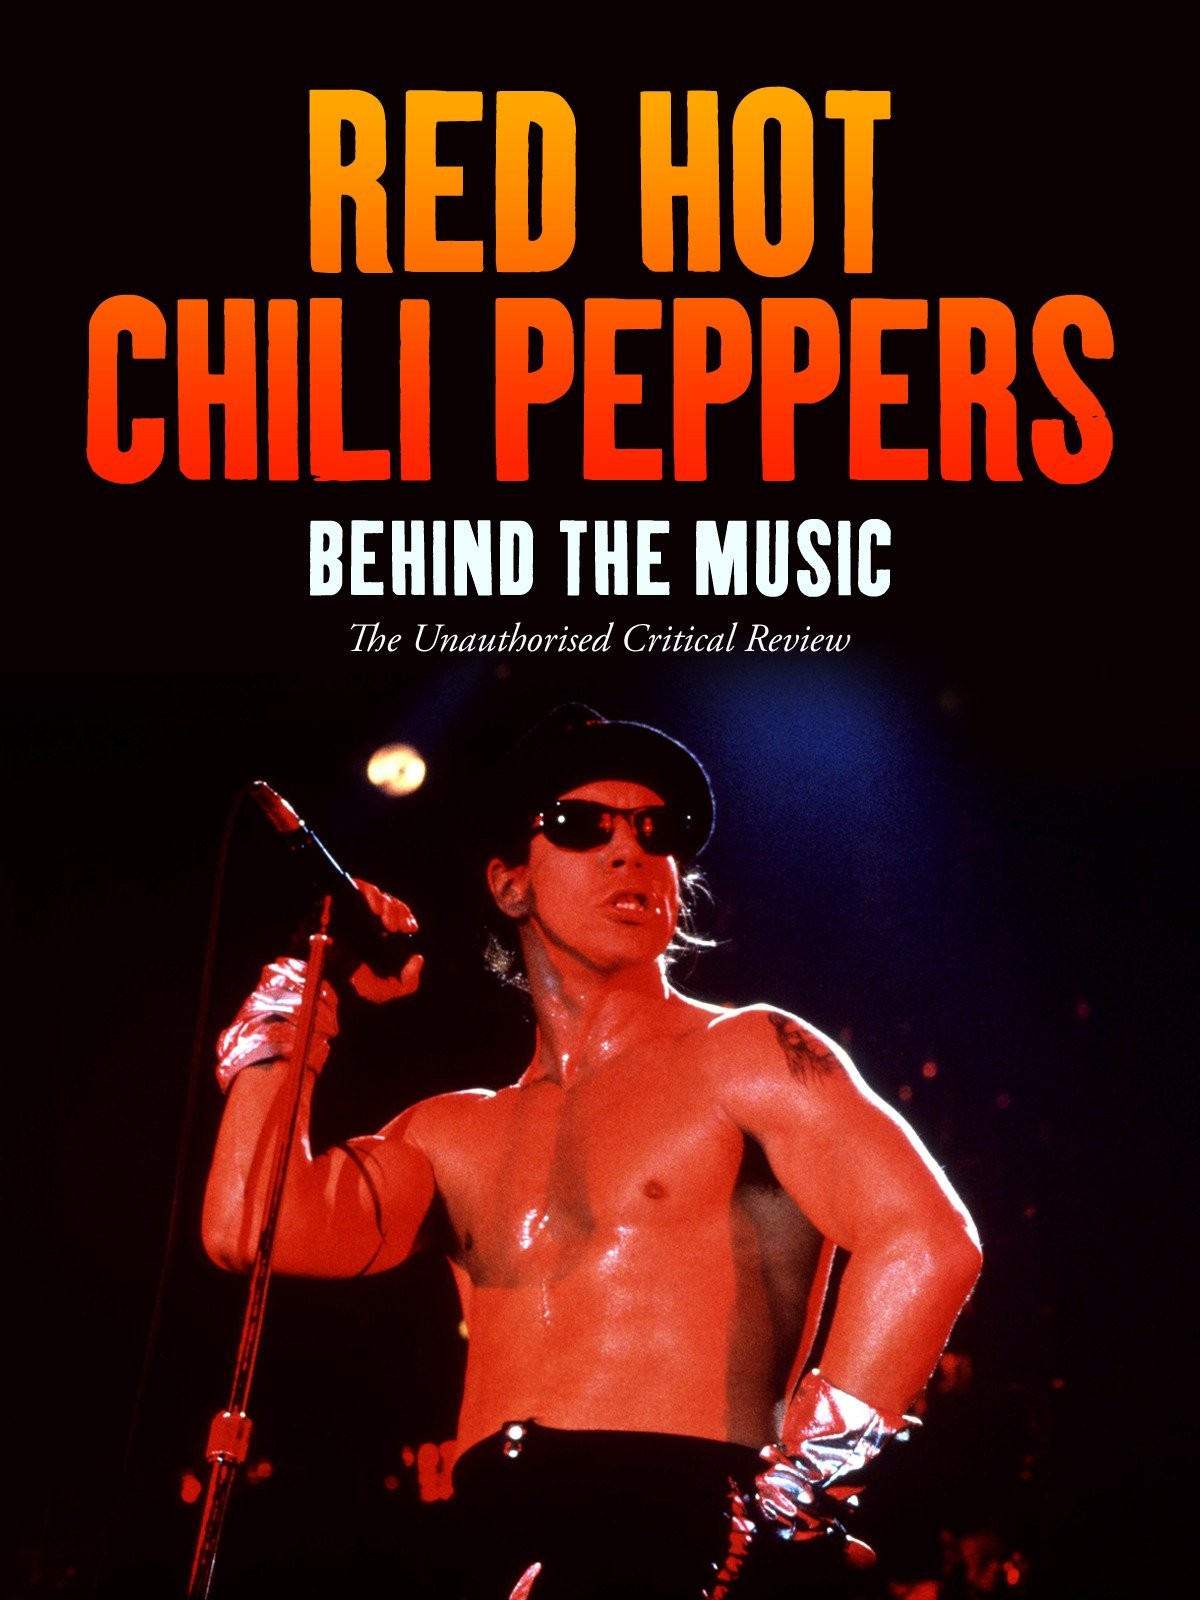 Red Hot Chili Peppers - Behind the Music